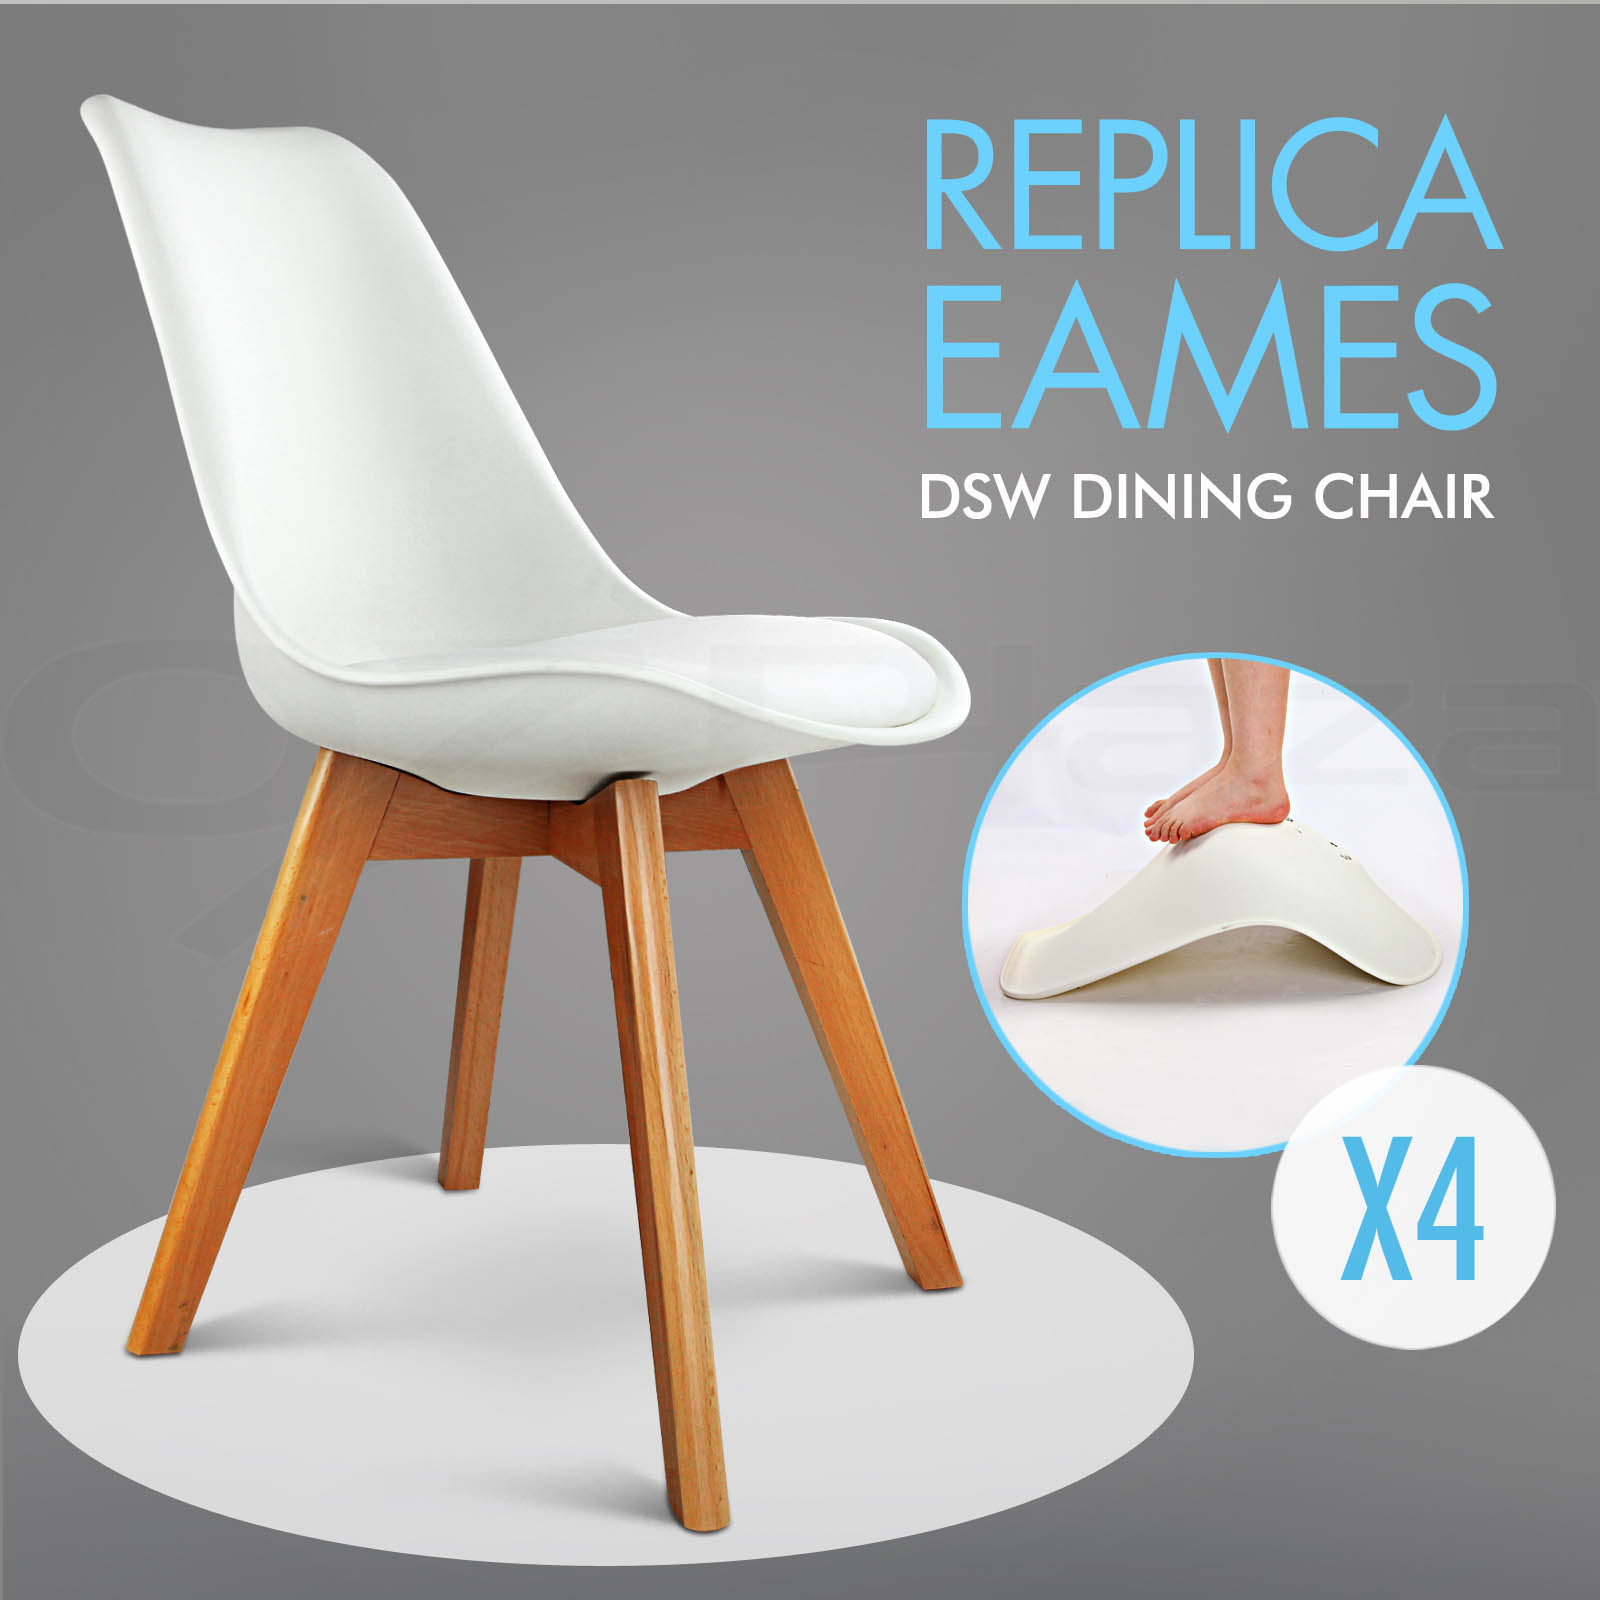 4 x retro replica eames dsw dining chair daw armchair foam for Reproduction eames dsw